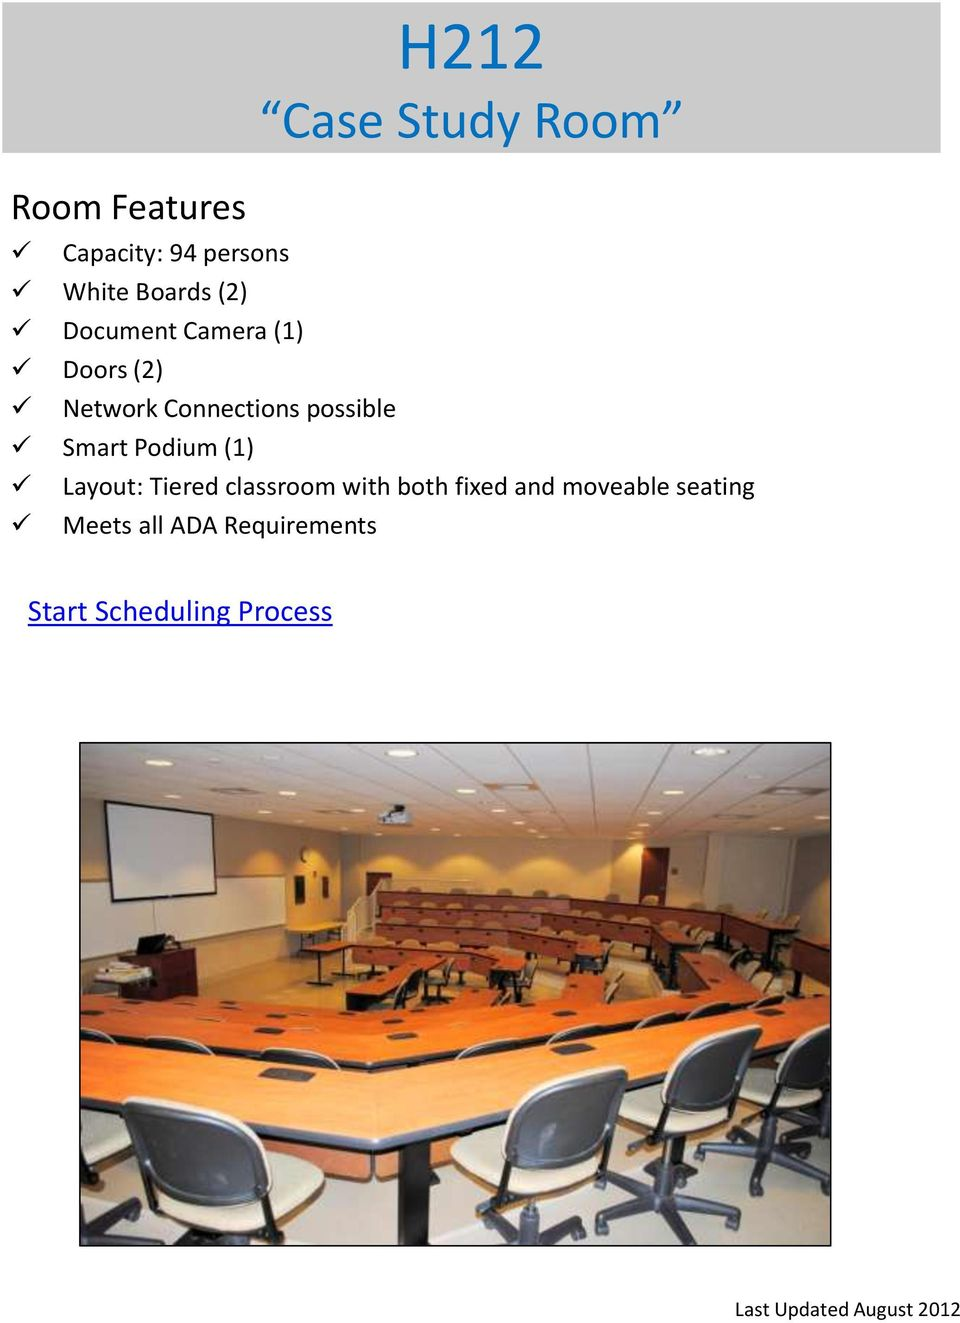 (1) H212 Case Study Room Layout: Tiered classroom with